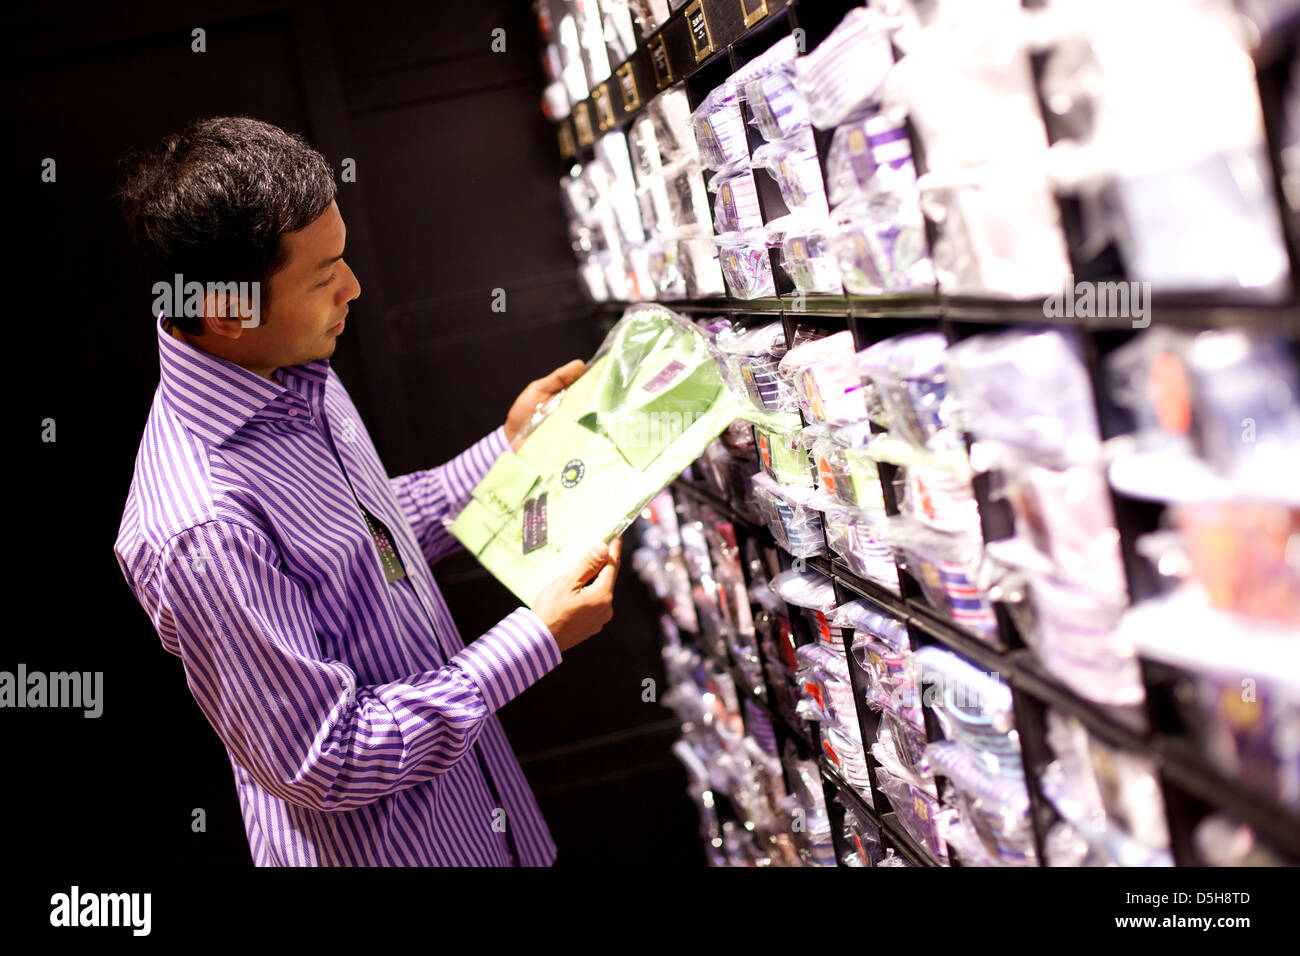 young man shopping in high street store - Stock Image